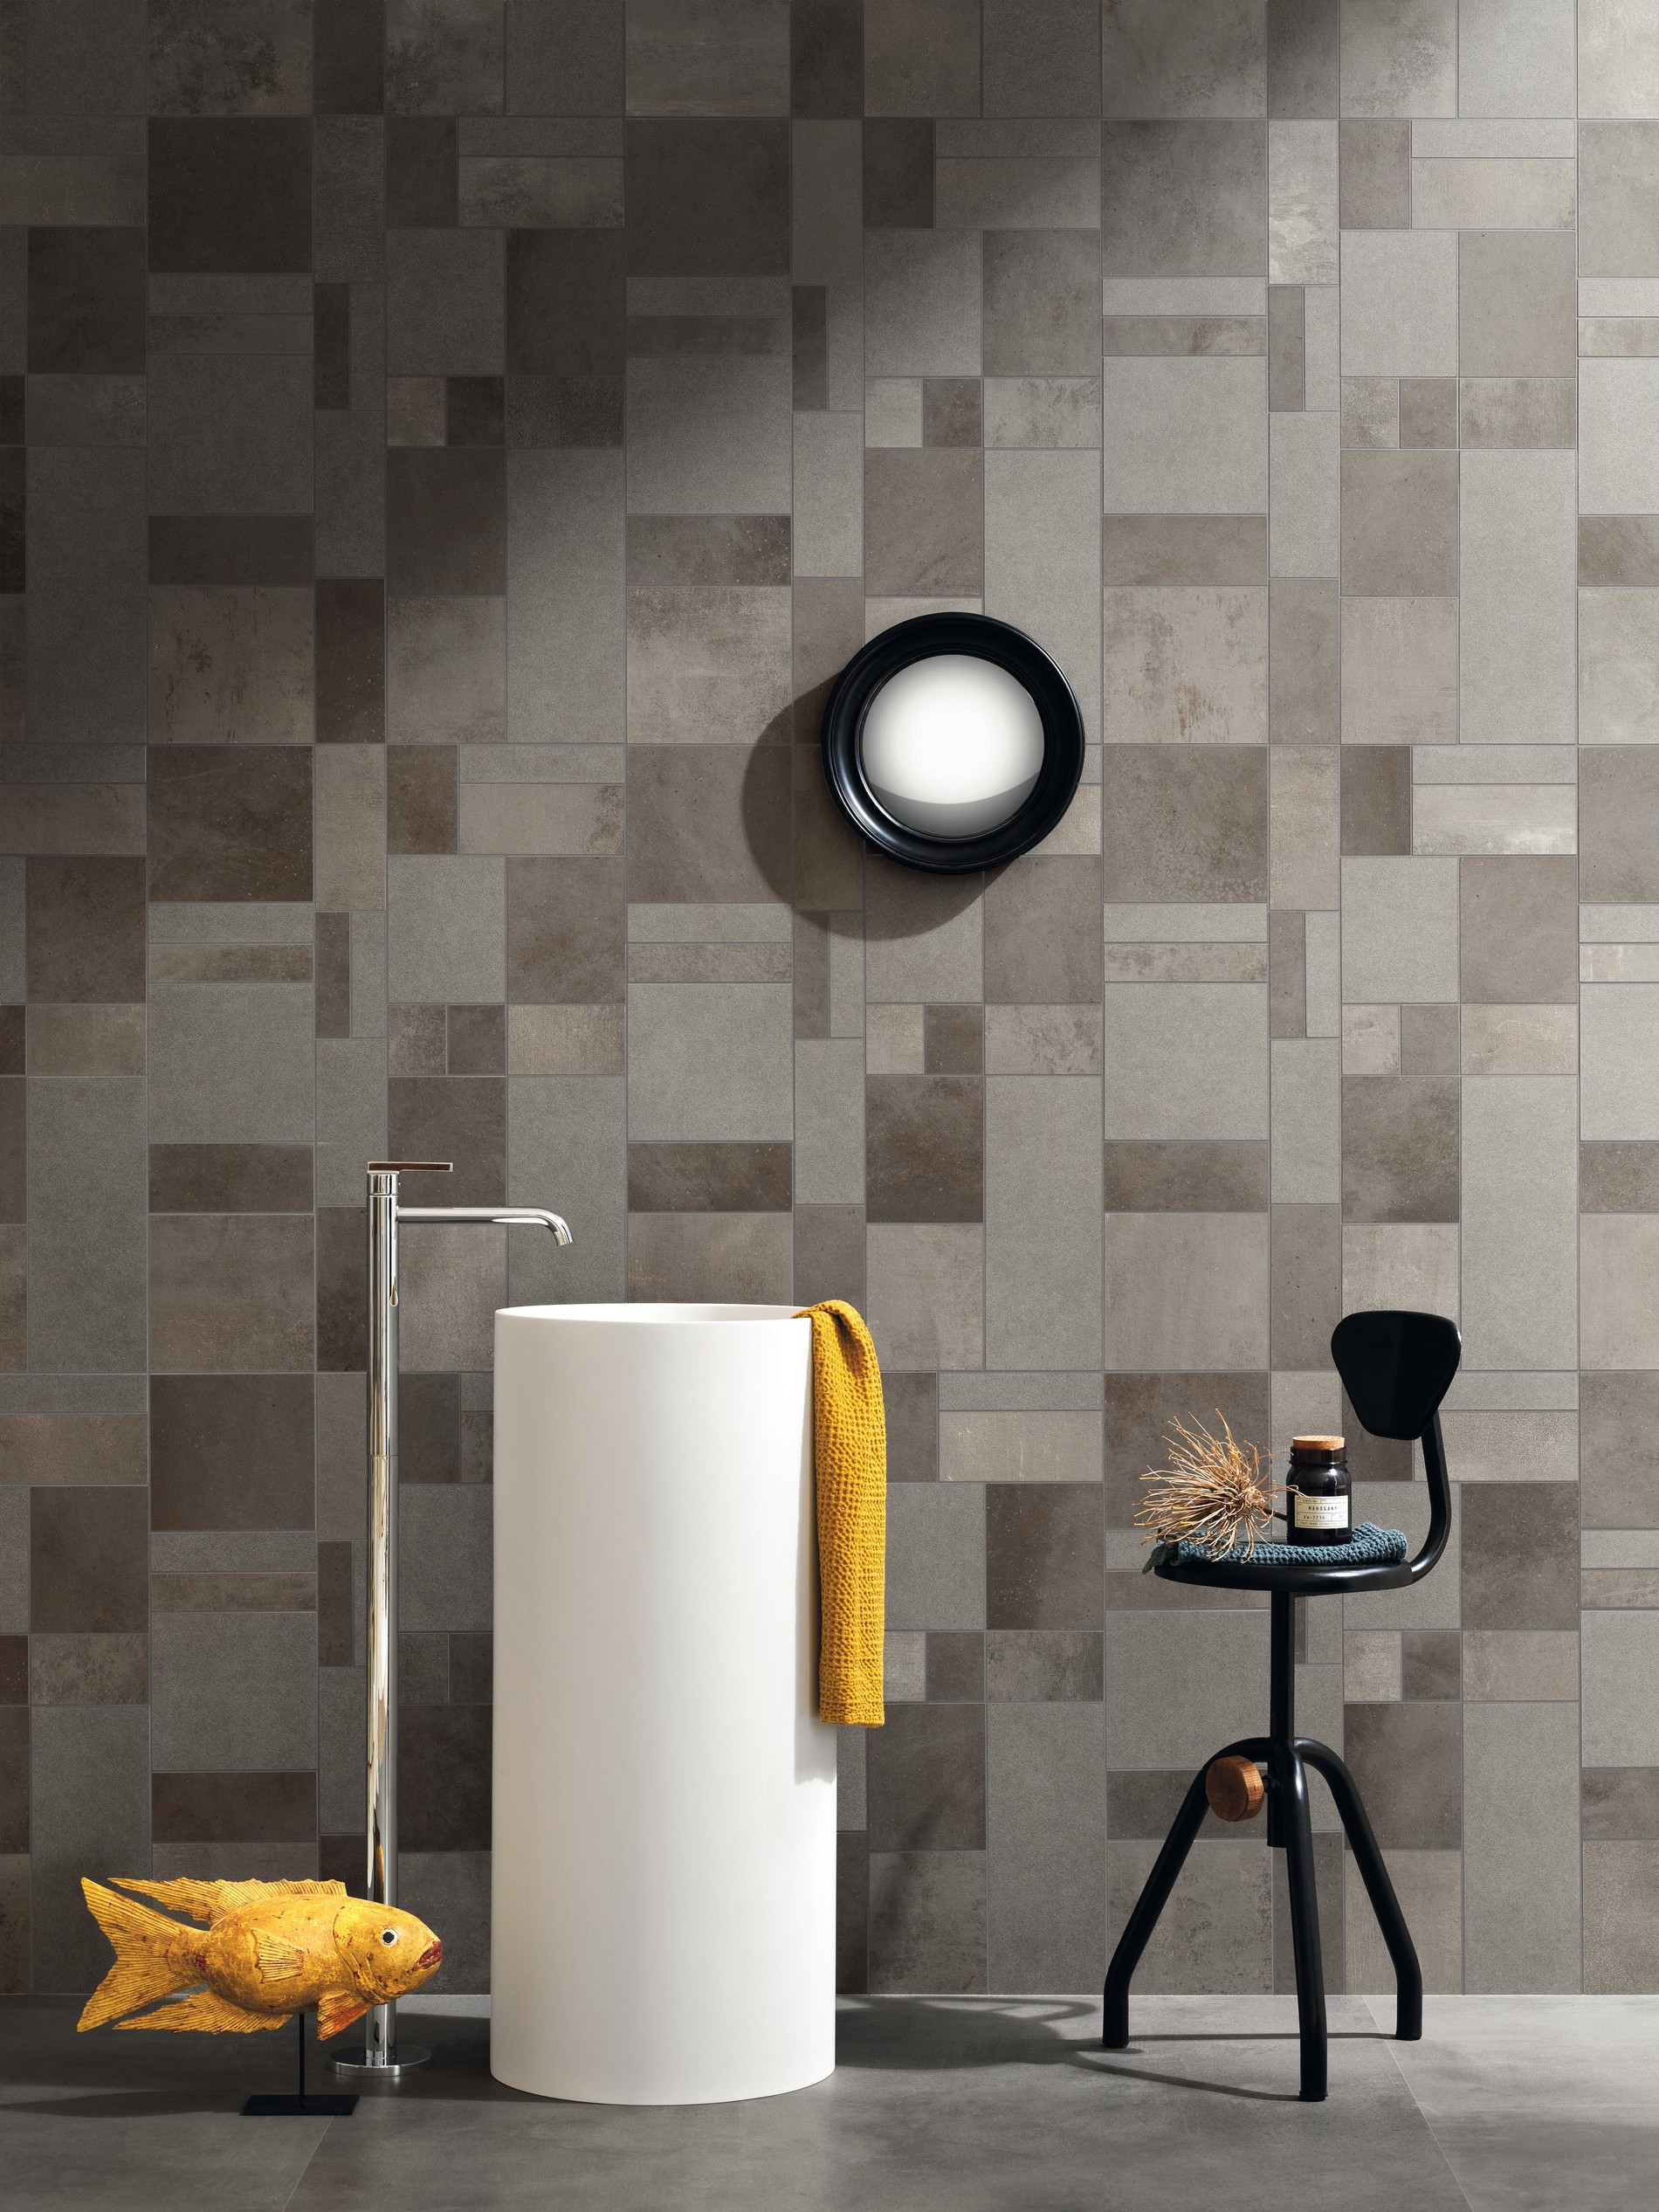 Three-dimensional wall tiles and decorative surfaces